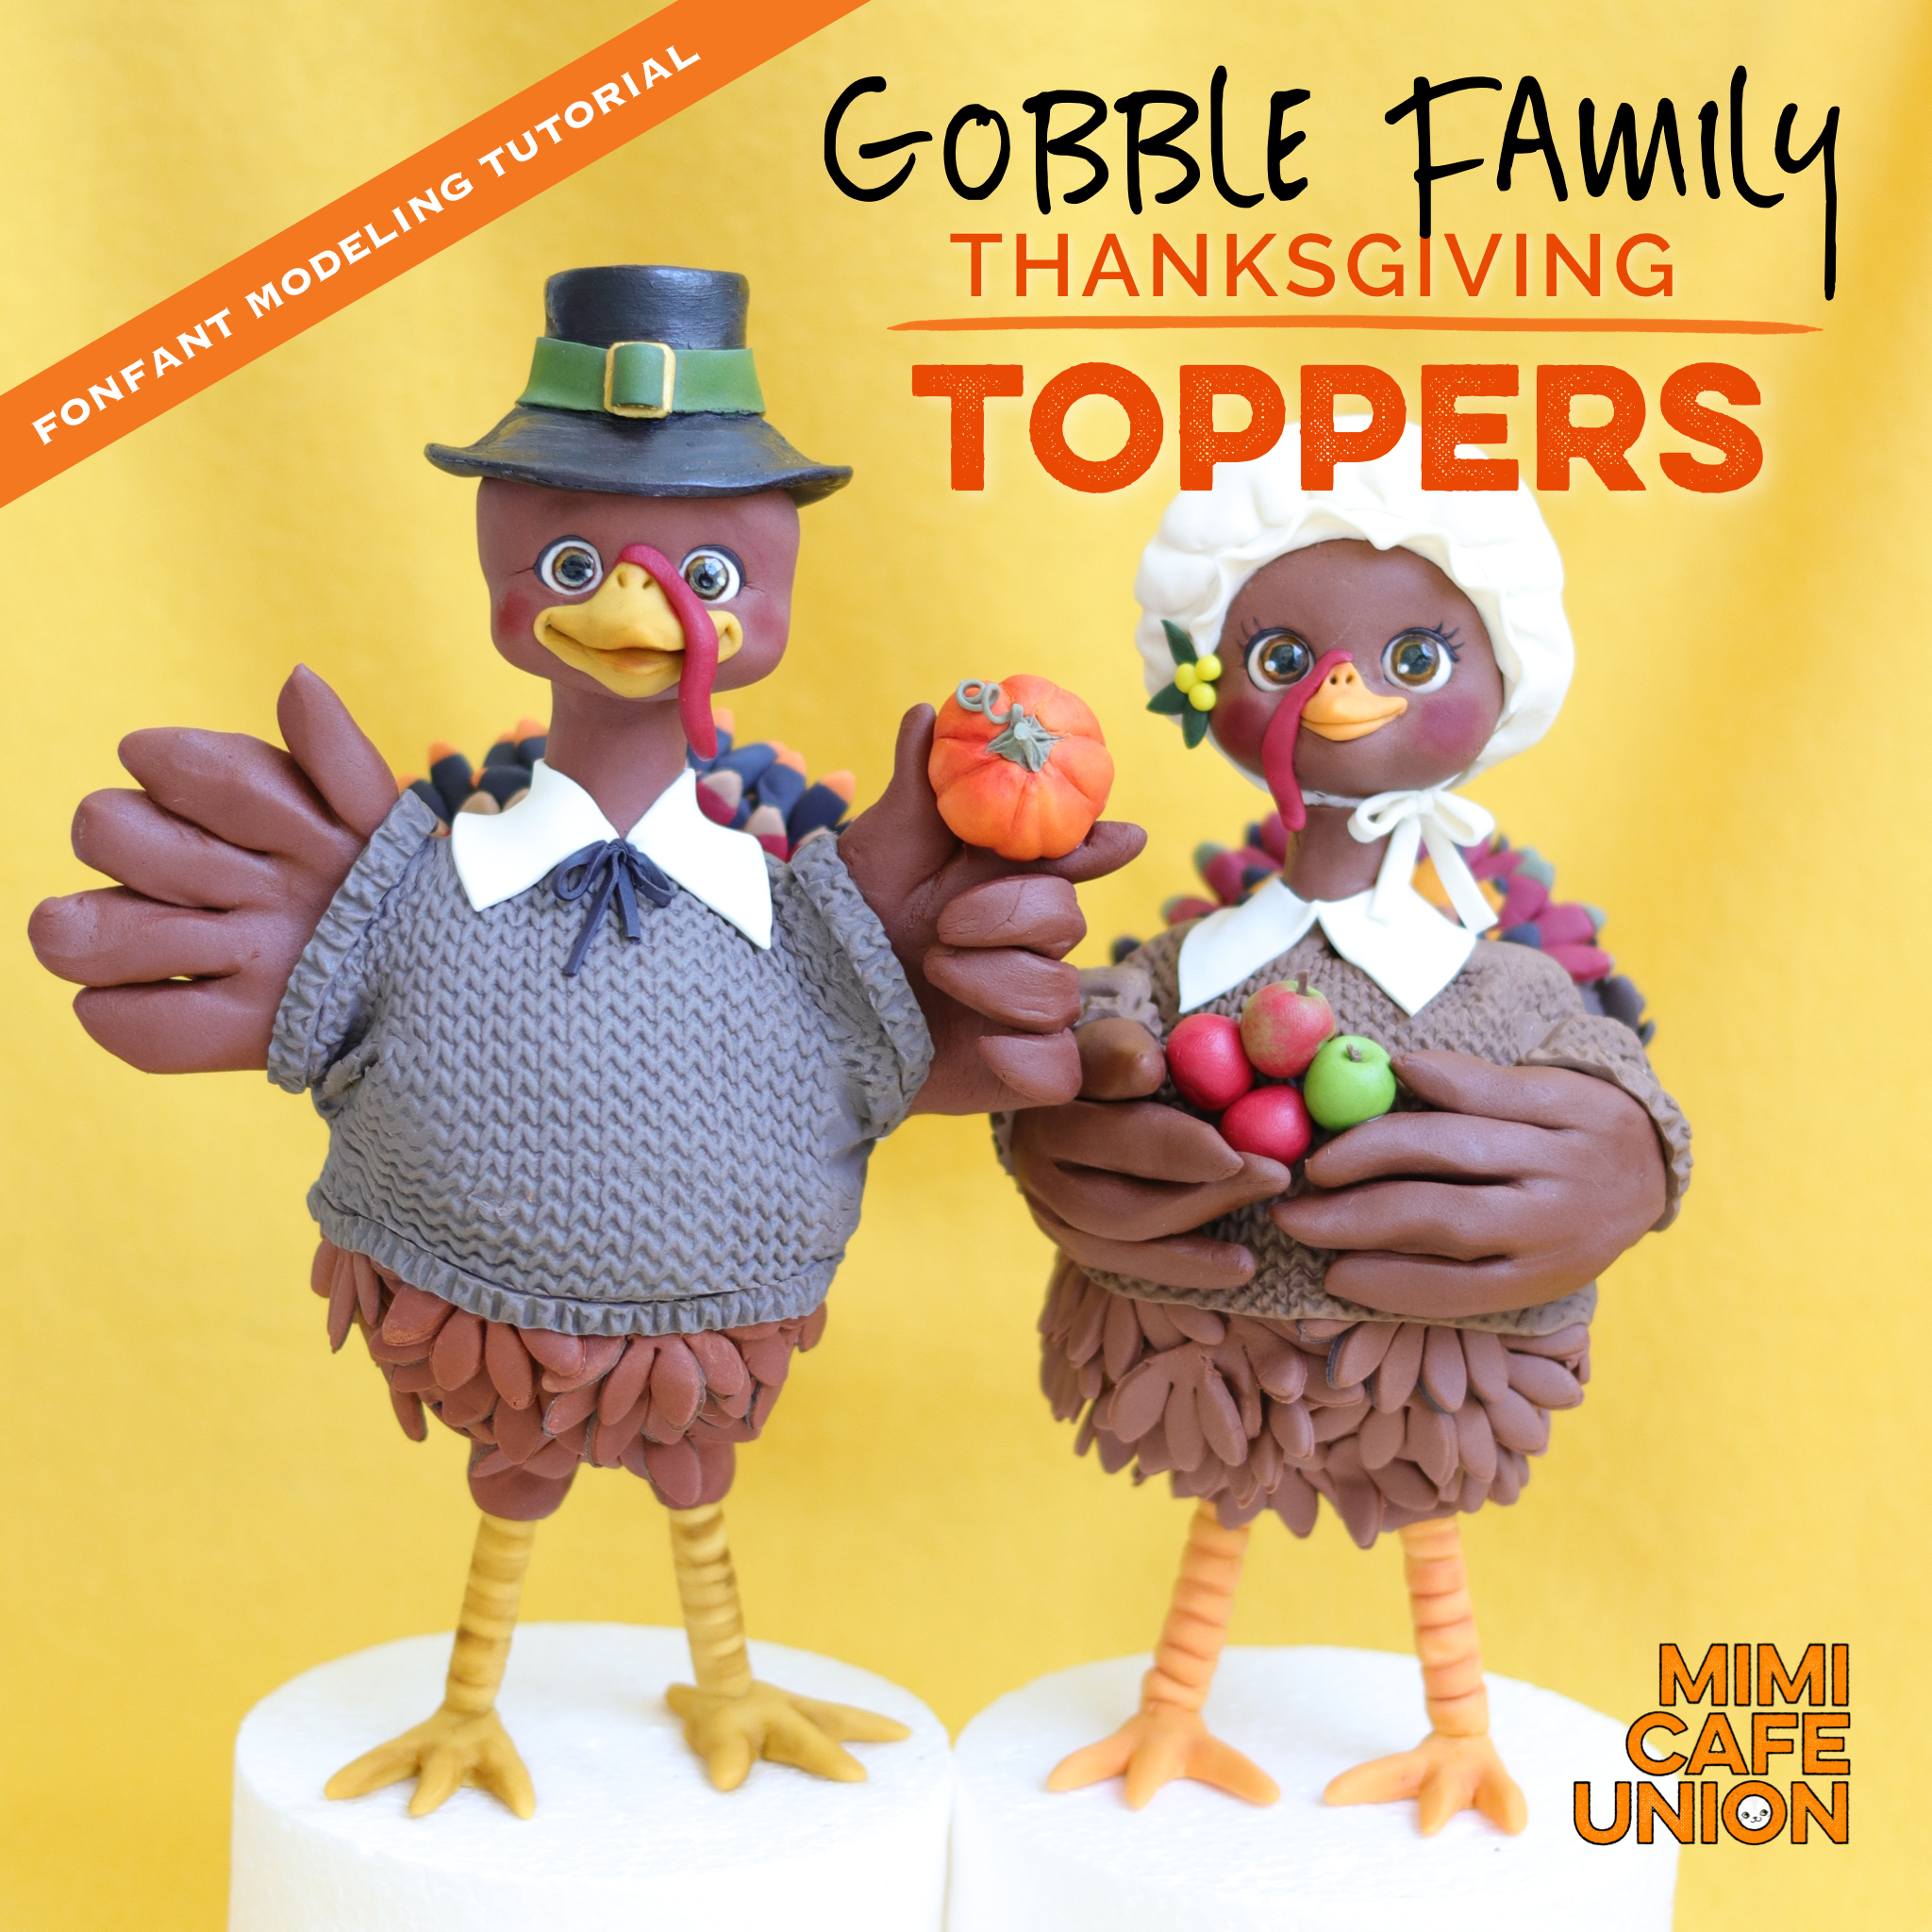 GOBBLE FAMILY THANKSGIVING TOPPERS